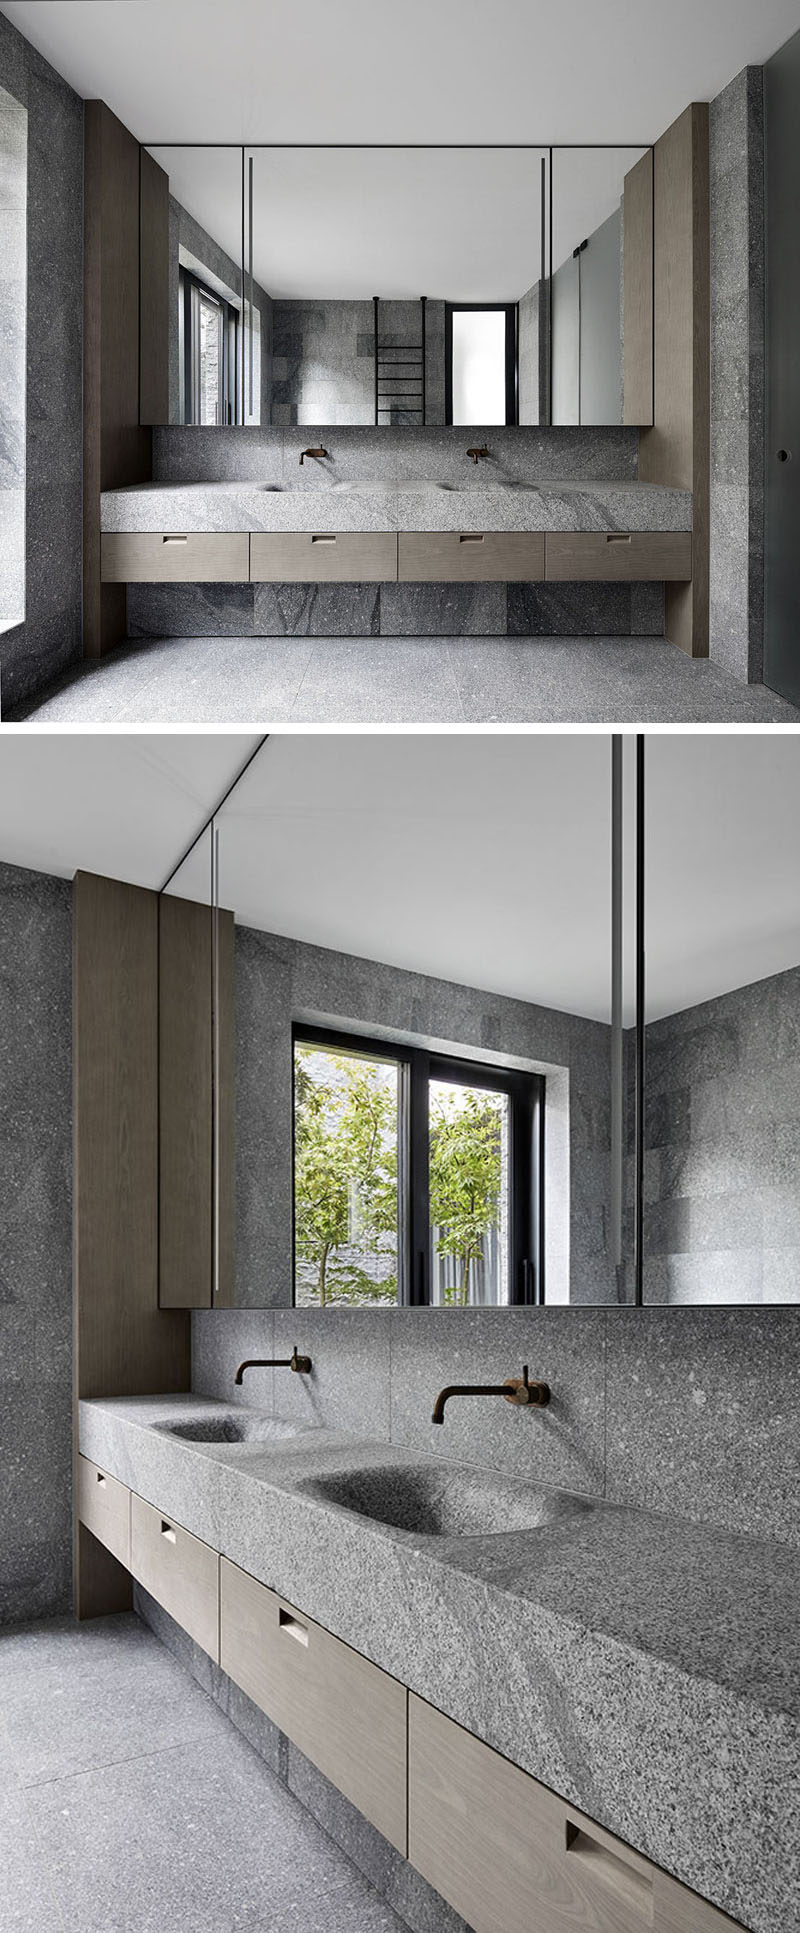 This modern master bathroom has smooth granite walls that create a natural appearance, while the basin and countertop have been engineered from a solid block of granite, creating a seamless finish. #GraniteBathroom #GraniteCounter #ModernBathroom